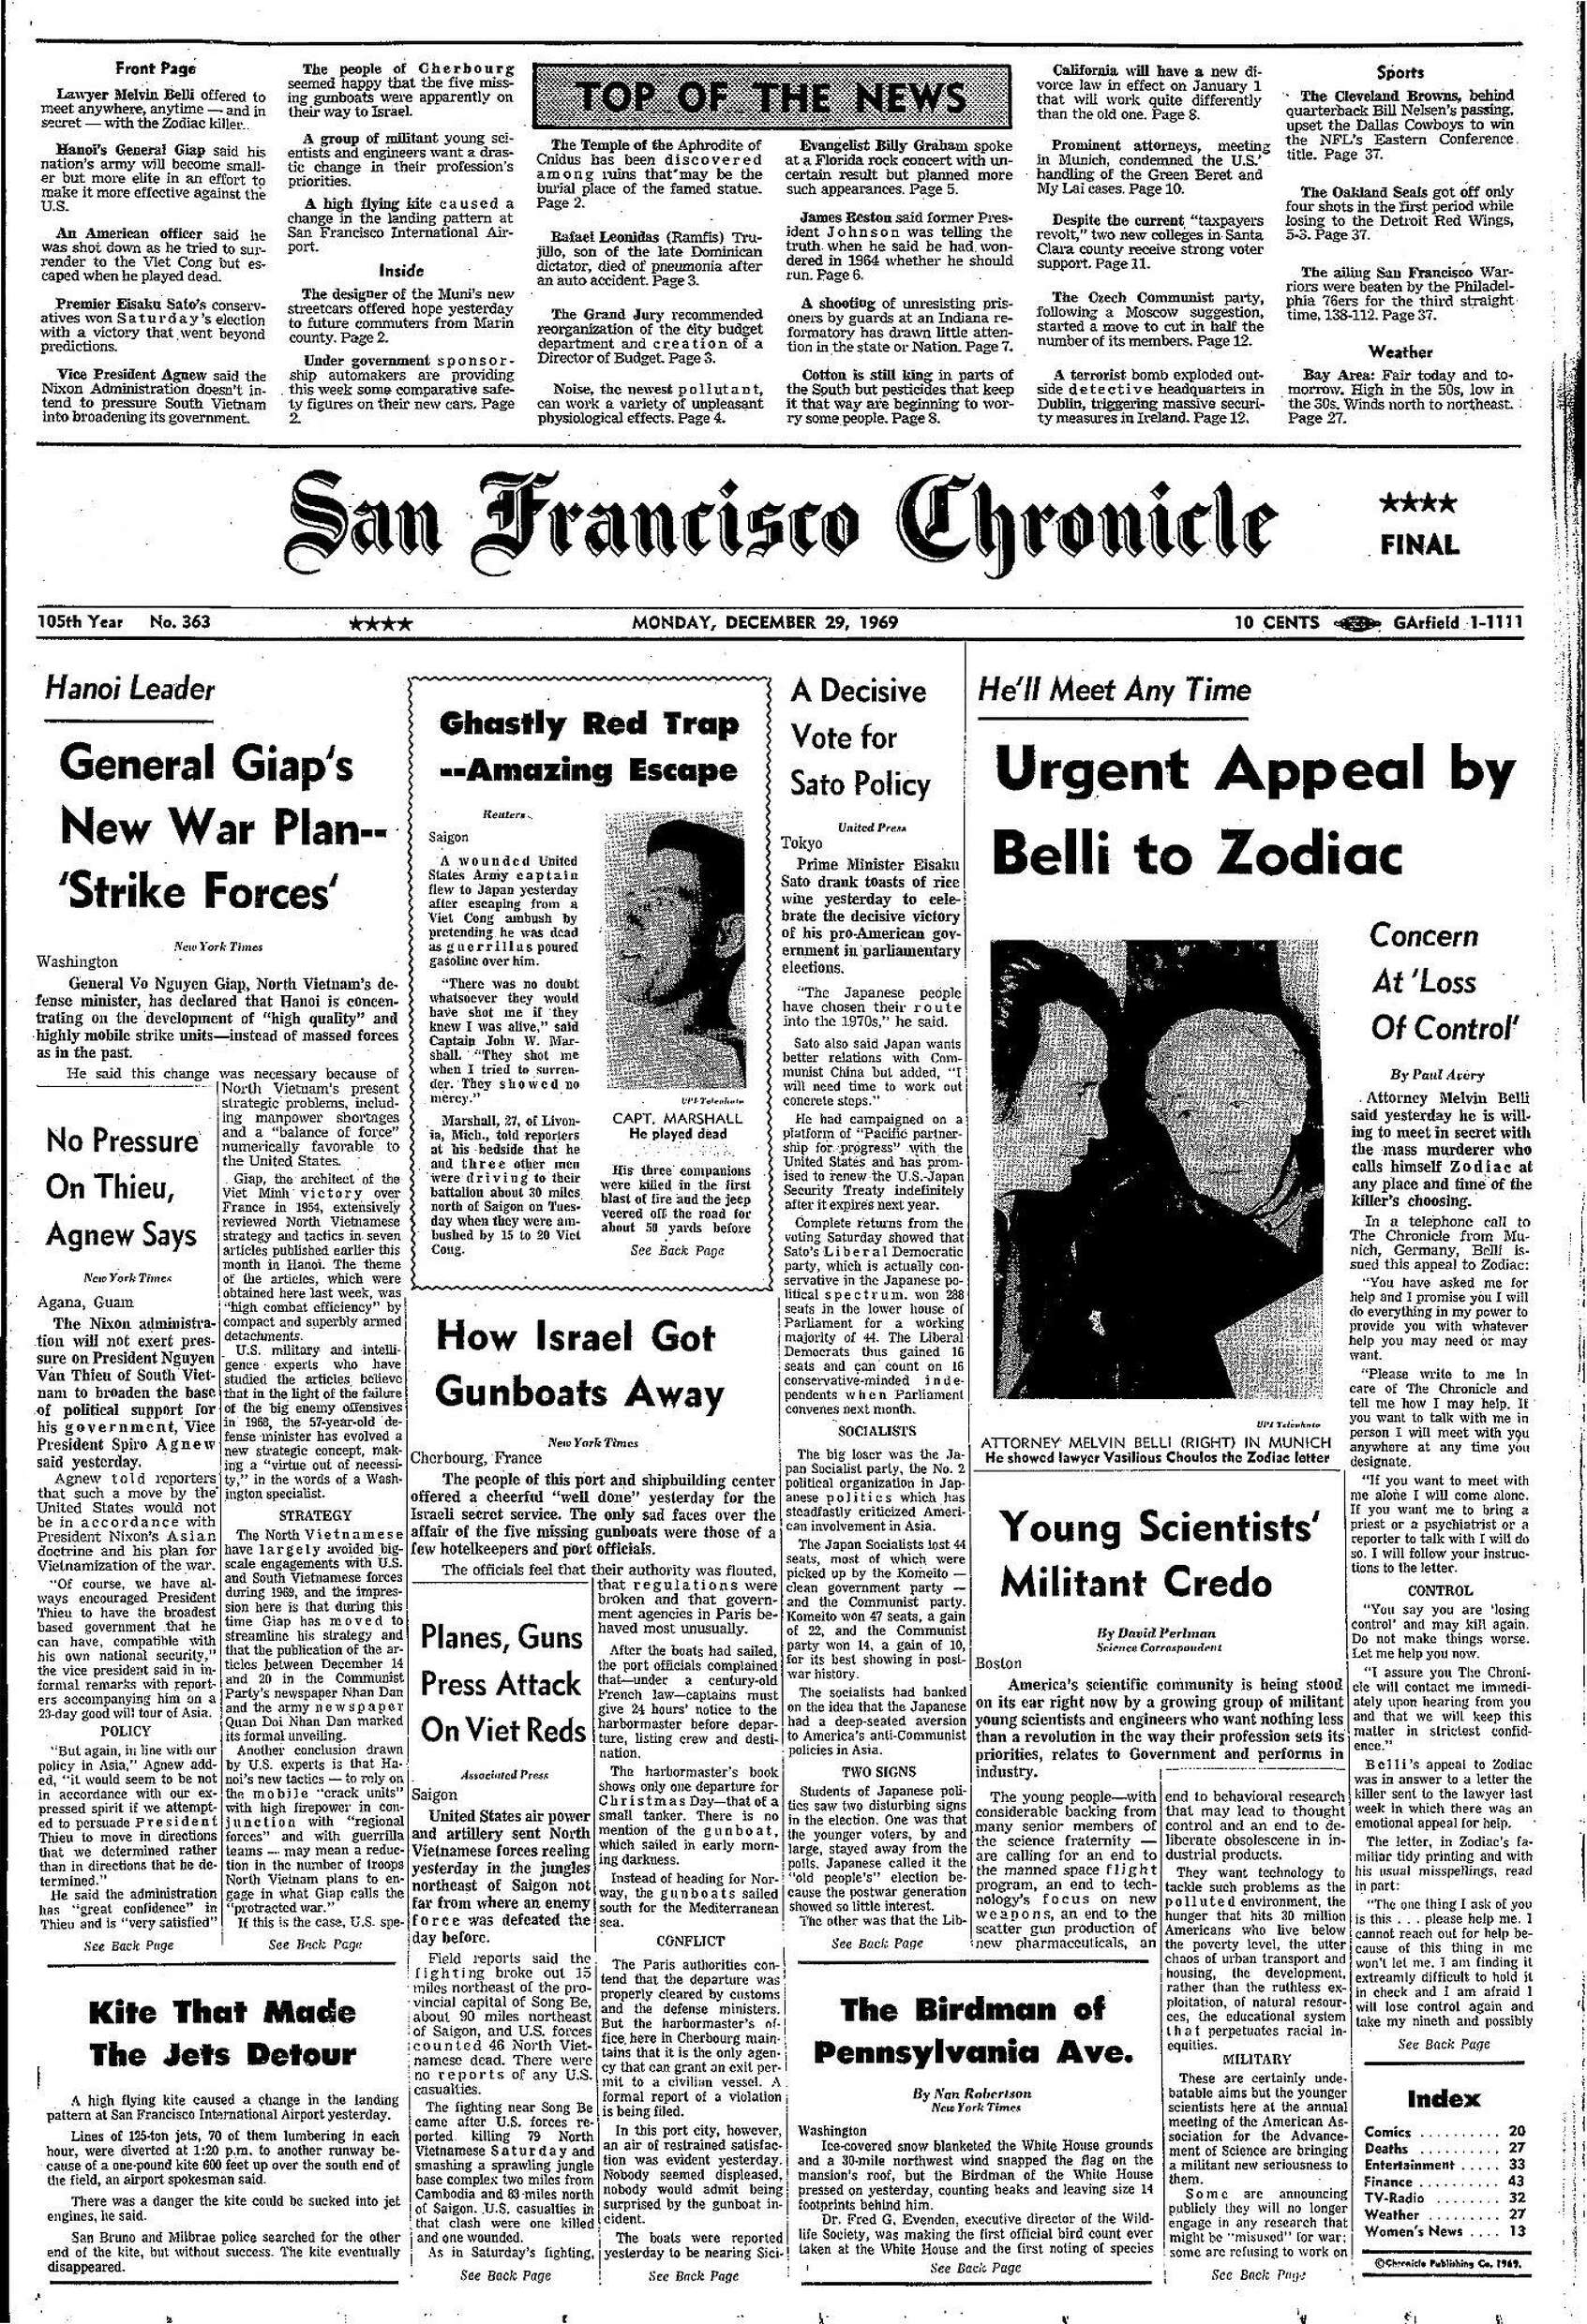 Chronicle Covers The Zodiacs Plea For Help To Melvin Belli